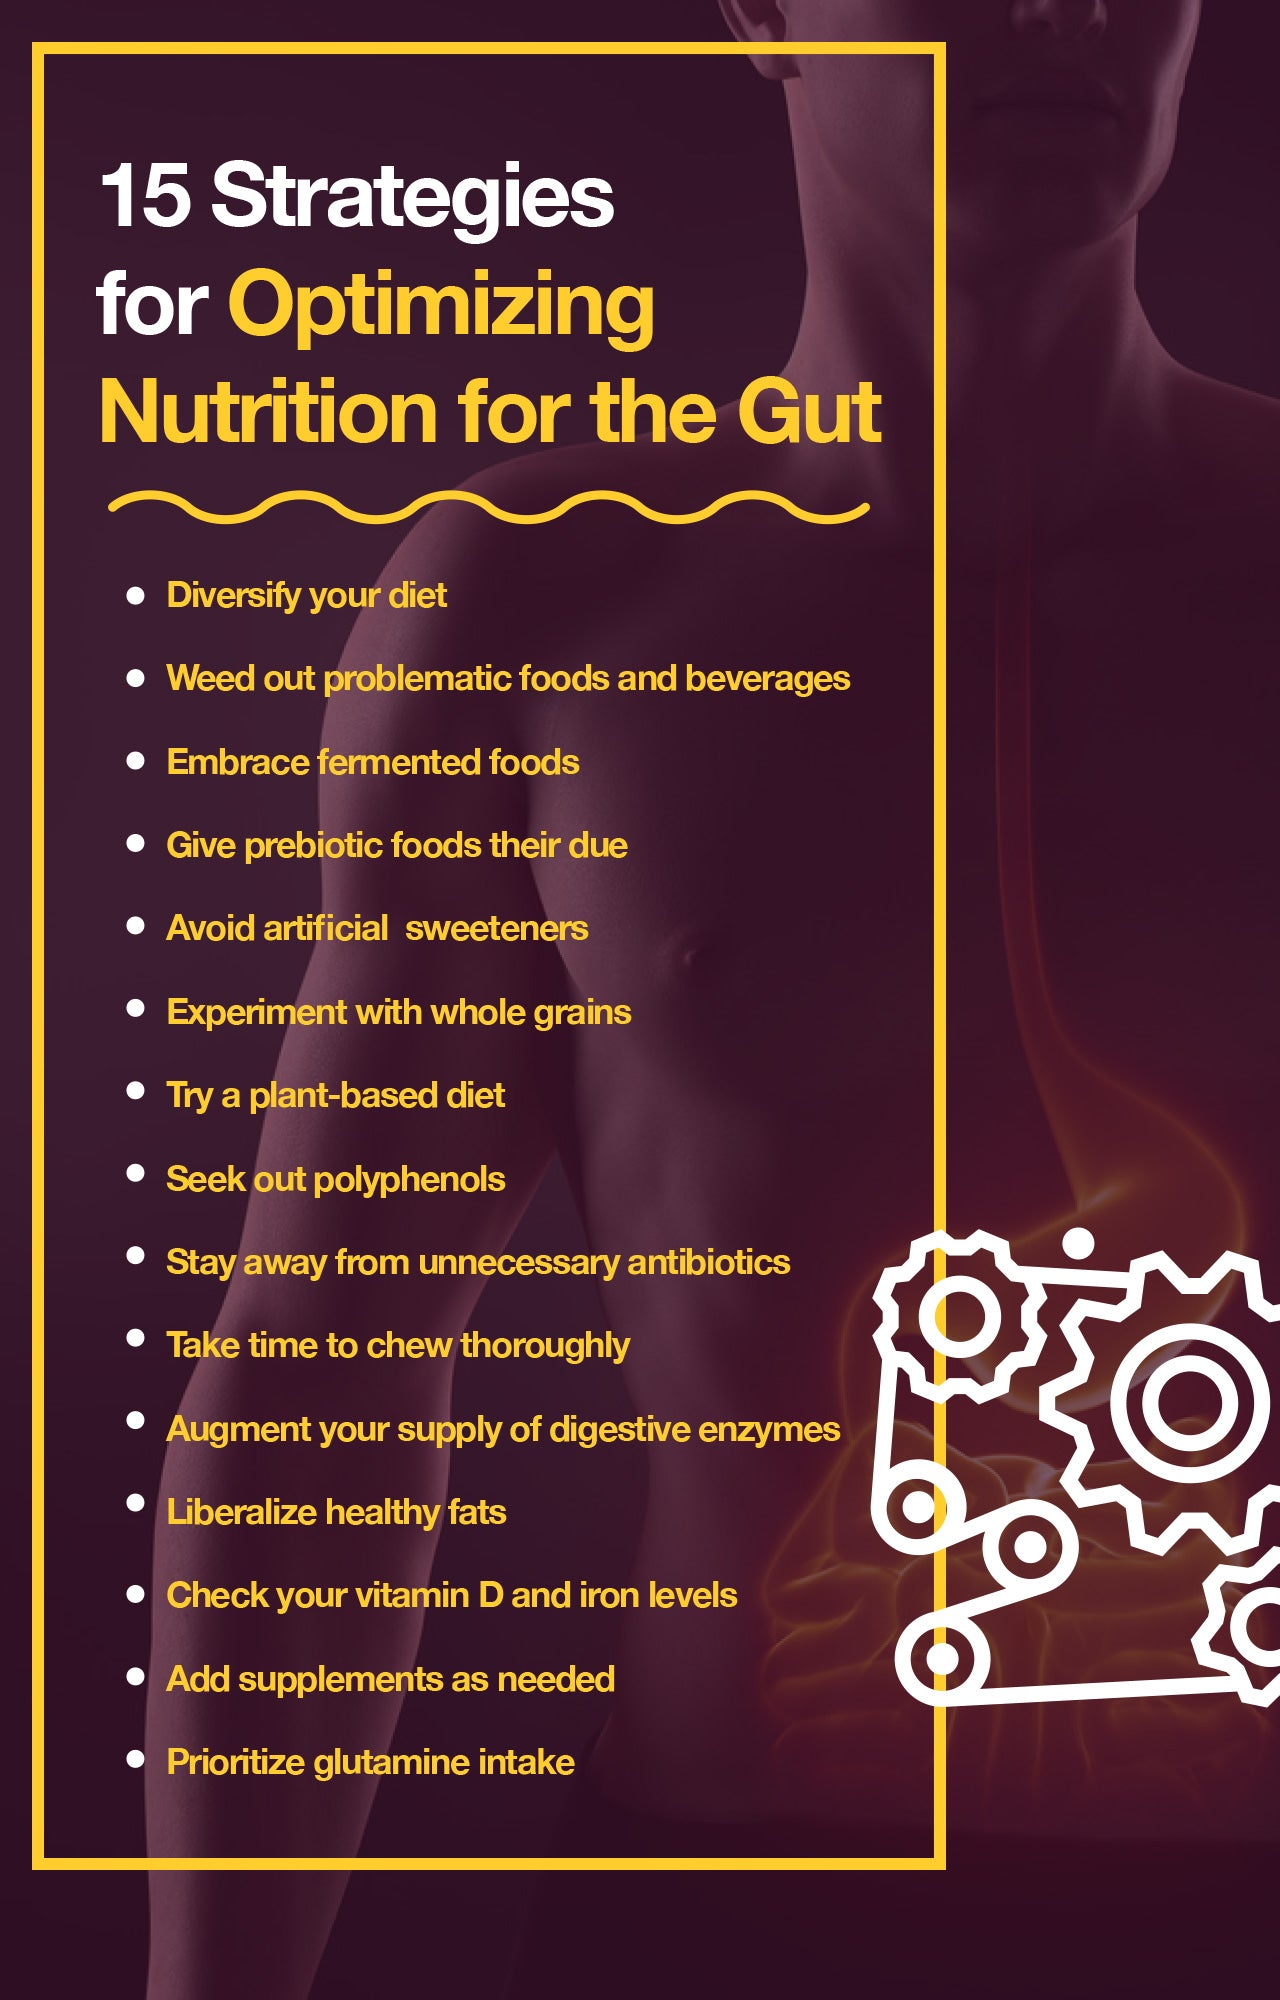 15 ways to improve gut health